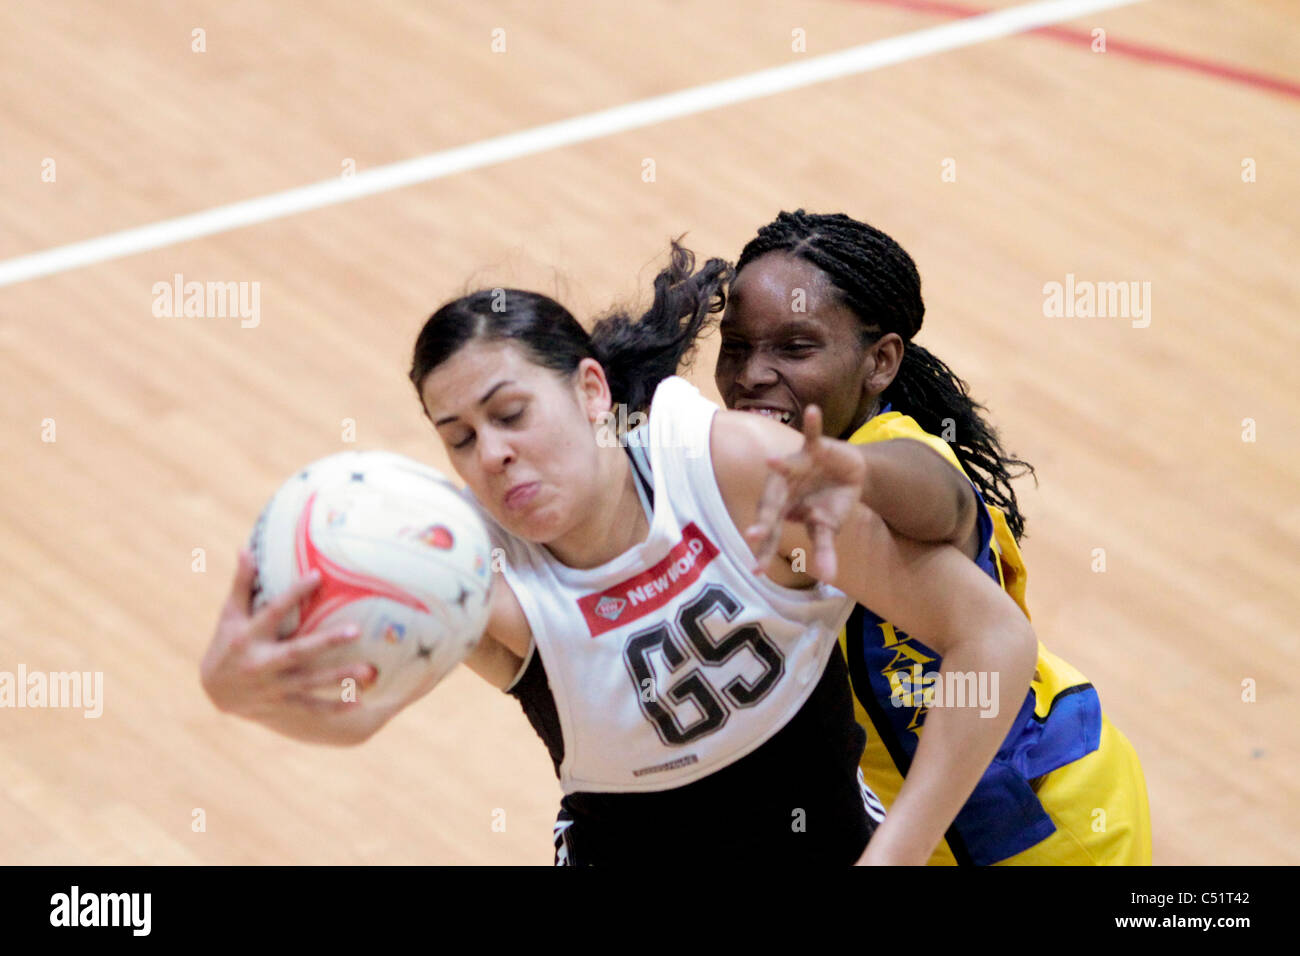 Paula Griffin of New Zealand(left) and Laurel Browne of Barbados battle for the ball during a friendly match - Stock Image